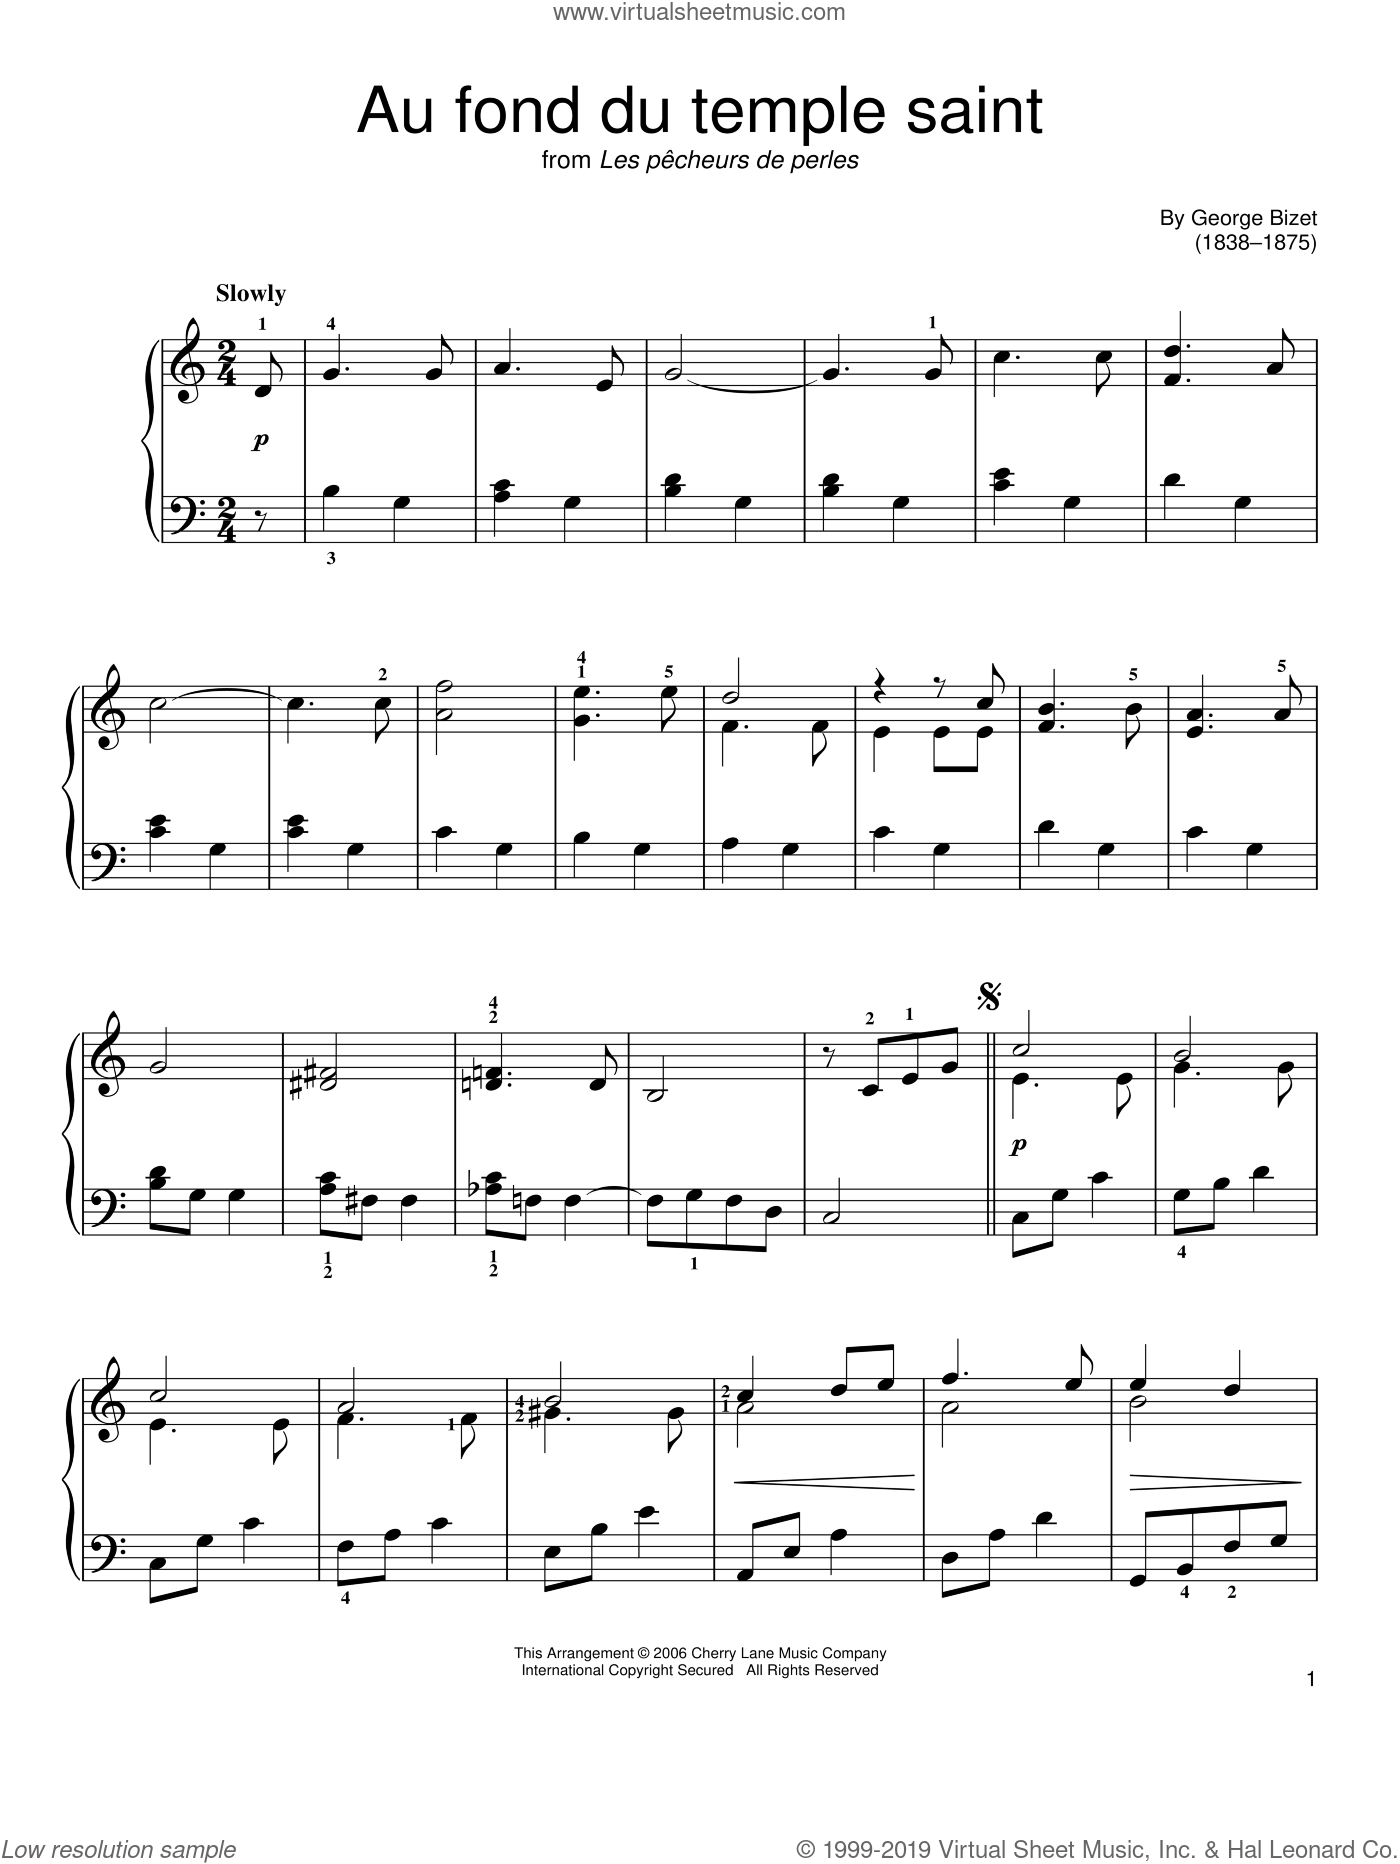 Au Fond Du Temple Saint sheet music for piano solo by Georges Bizet